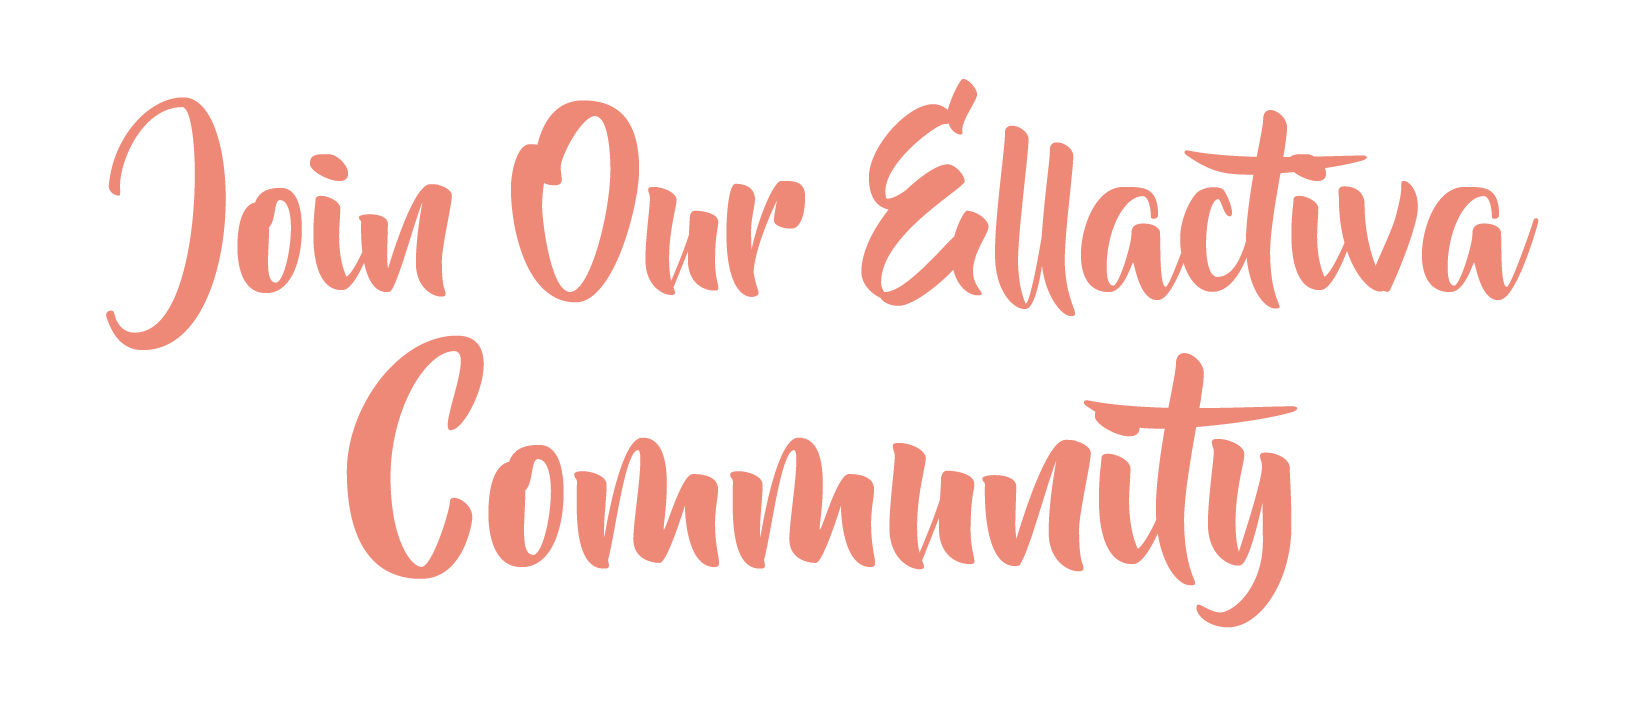 Join Our Ellactiva Community